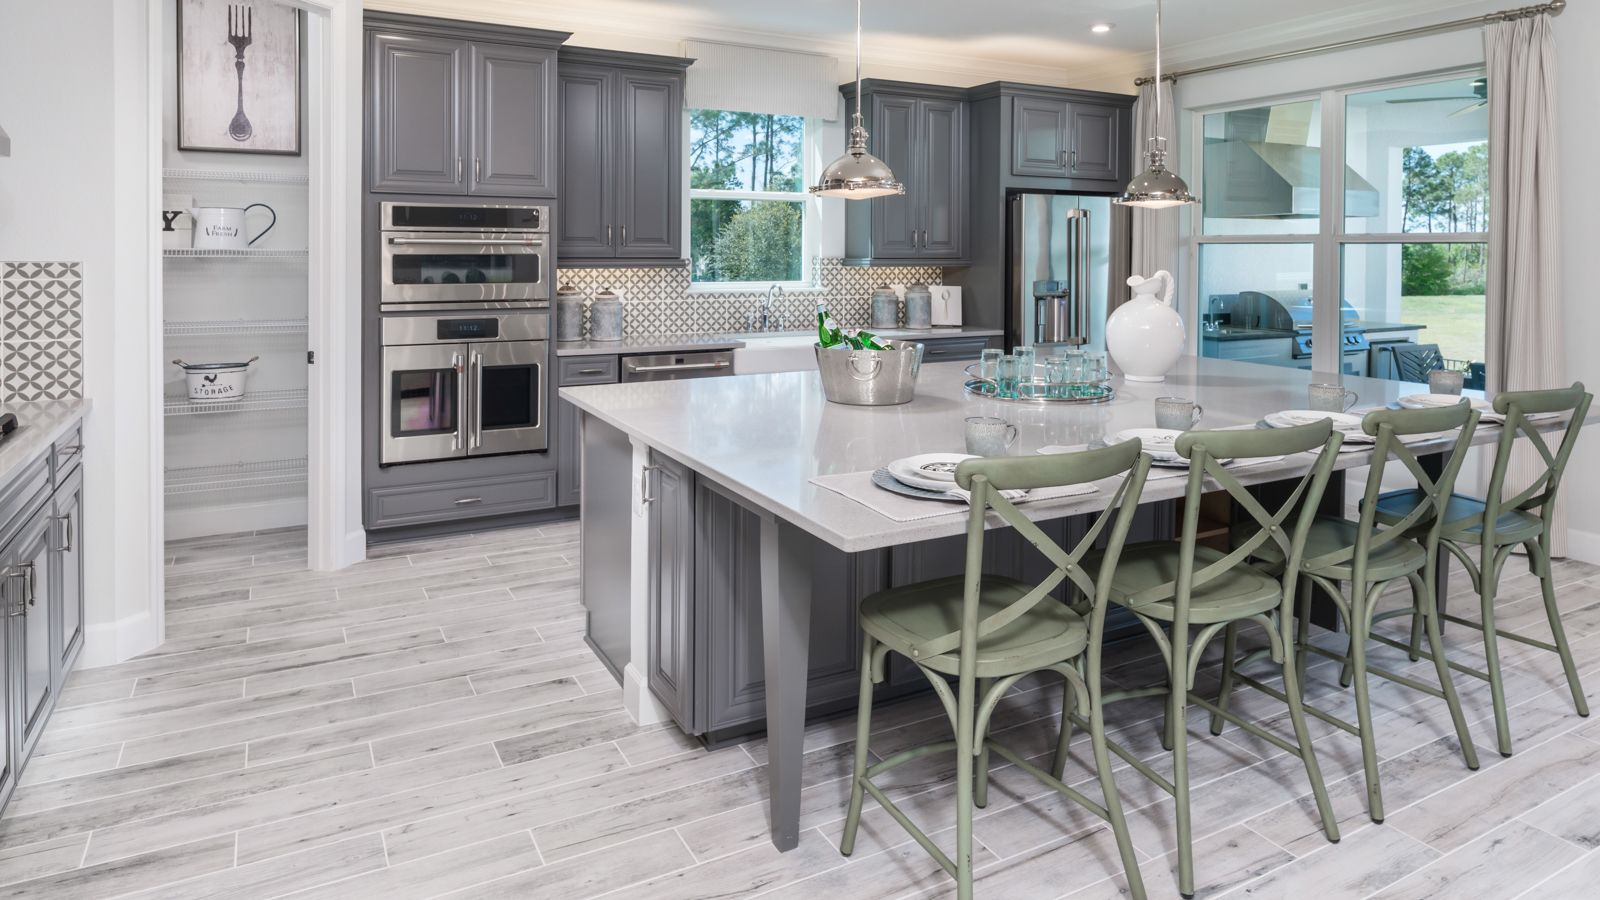 Kitchen featured in the Amelia By Taylor Morrison in Orlando, FL